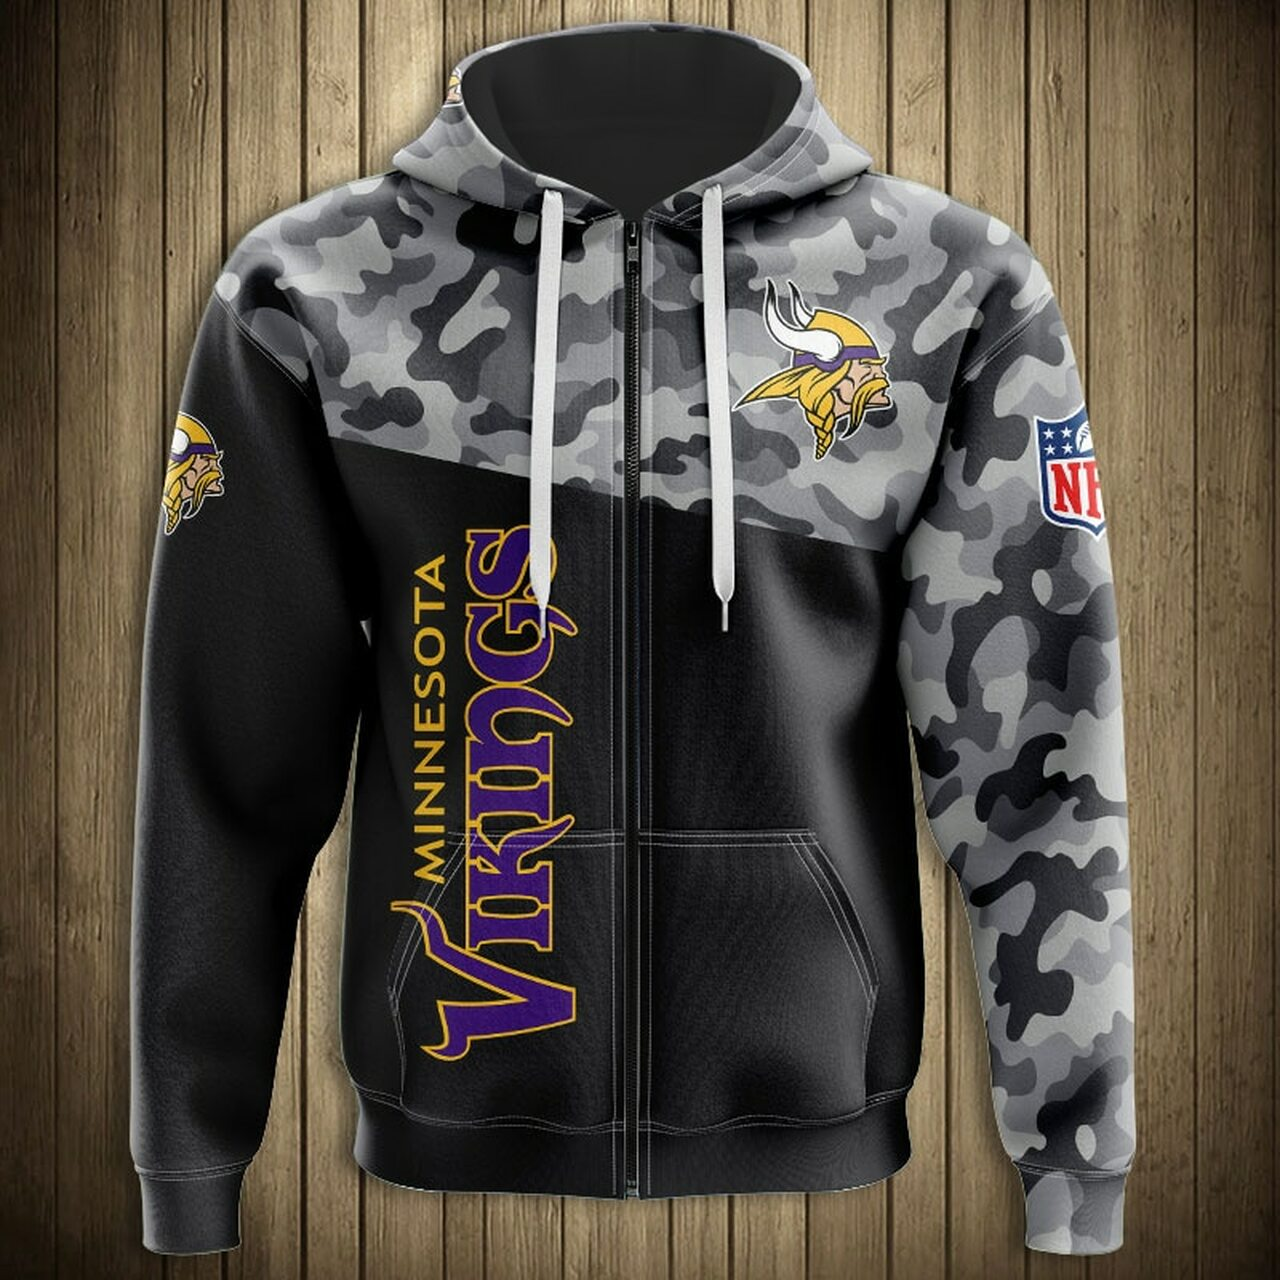 new product 21e16 27dc2 **(OFFICIAL-N.F.L.MINNESOTA-VIKINGS-CAMO.DESIGN-ZIPPERED-HOODIES/3D-CUSTOM-VIKINGS-LOGOS  & OFFICIAL-VIKINGS-TEAM-COLORS/DETAILED-3D-GRAPHIC-PRINTED-DO...